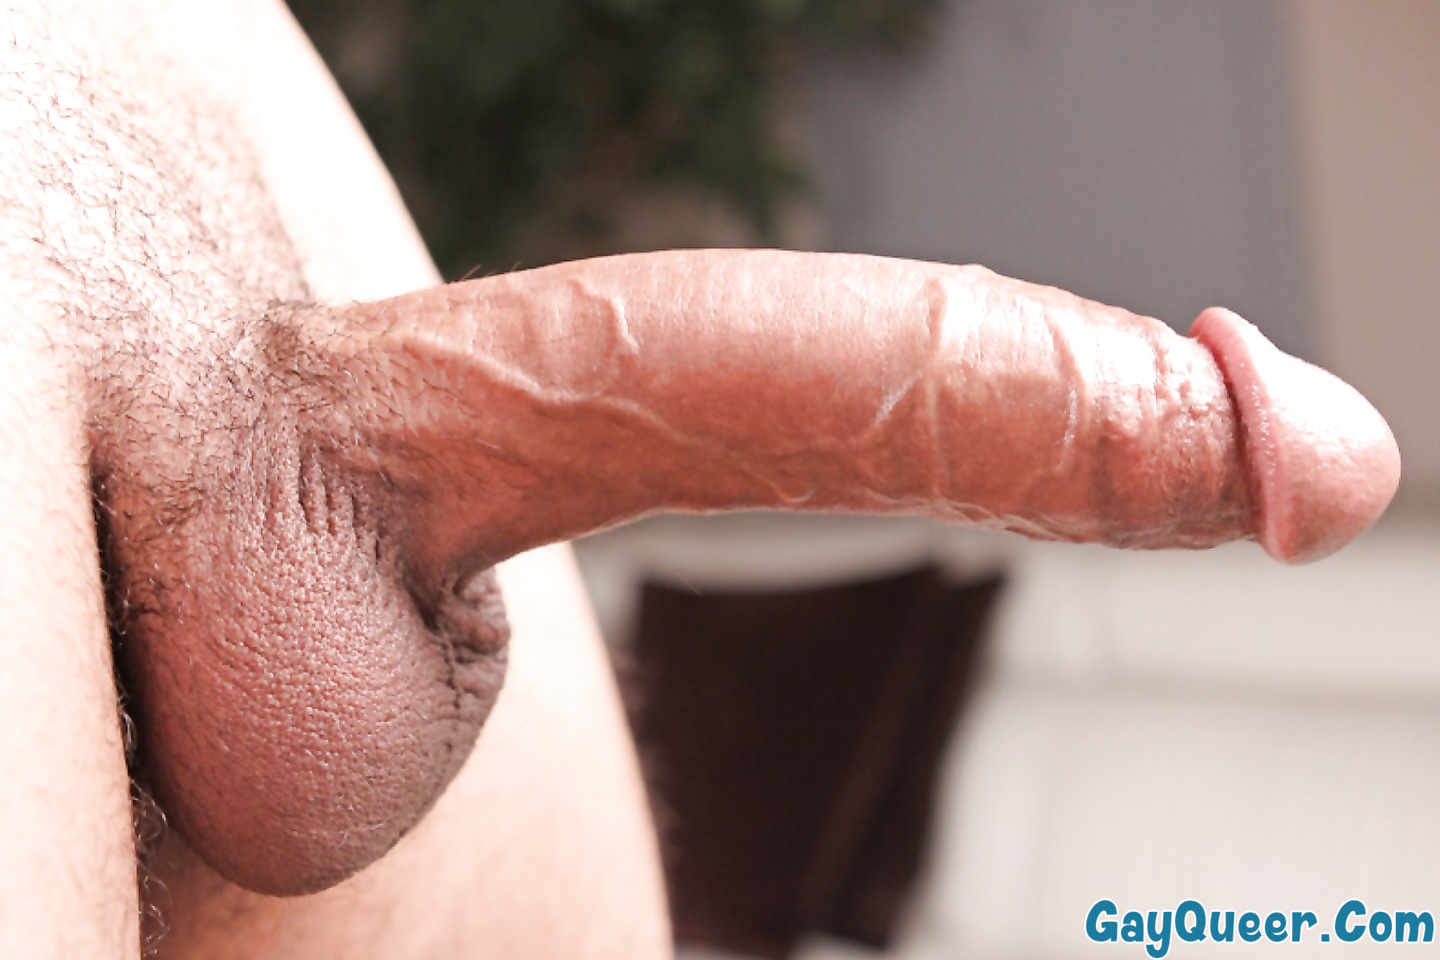 Hubert caresses his thick chode, perky nipples and big balls with no shame